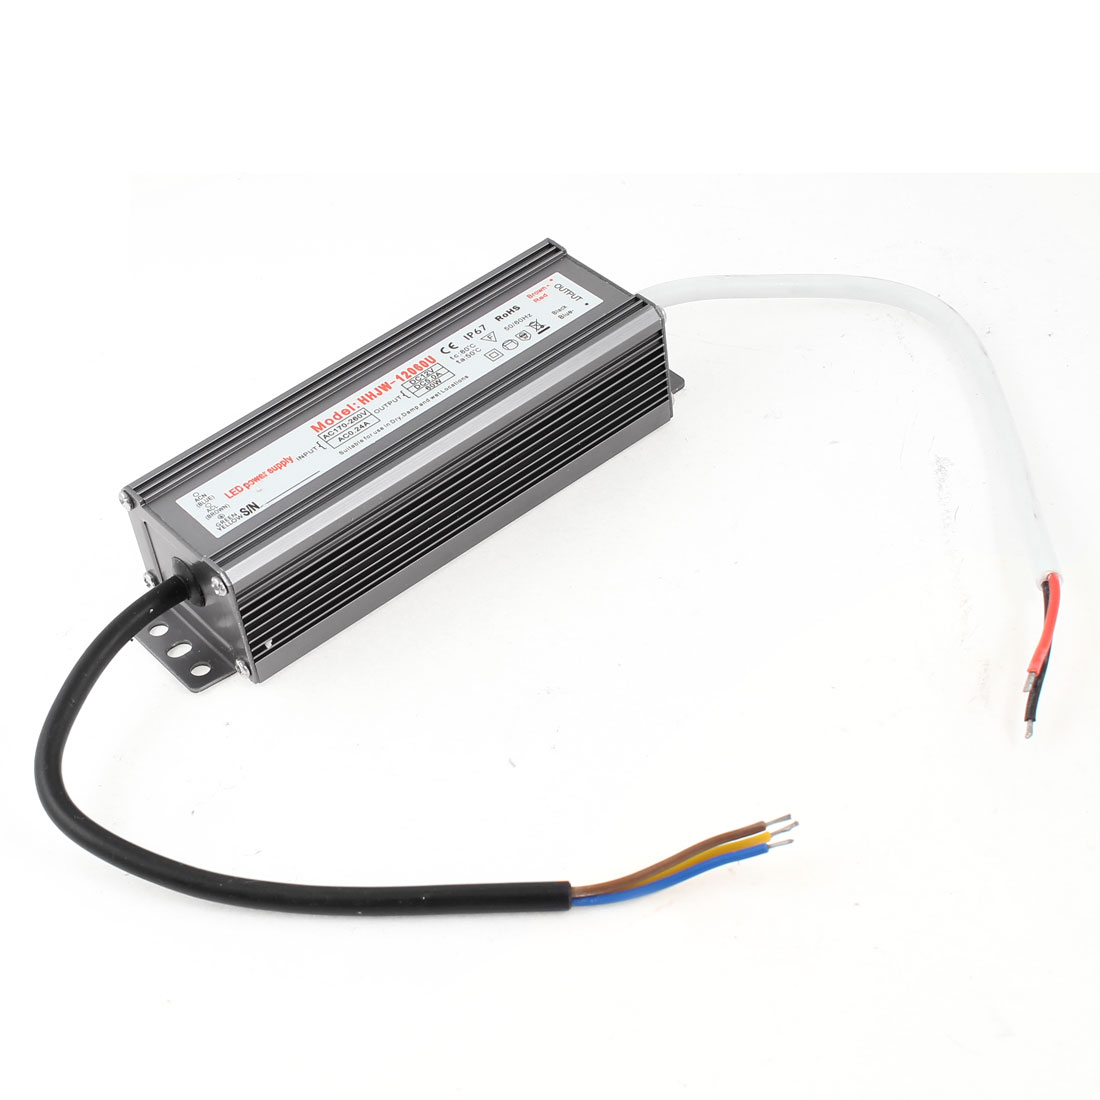 AC170-260V DC12V 5A 60W Waterproof Power Supply for LED Lighting